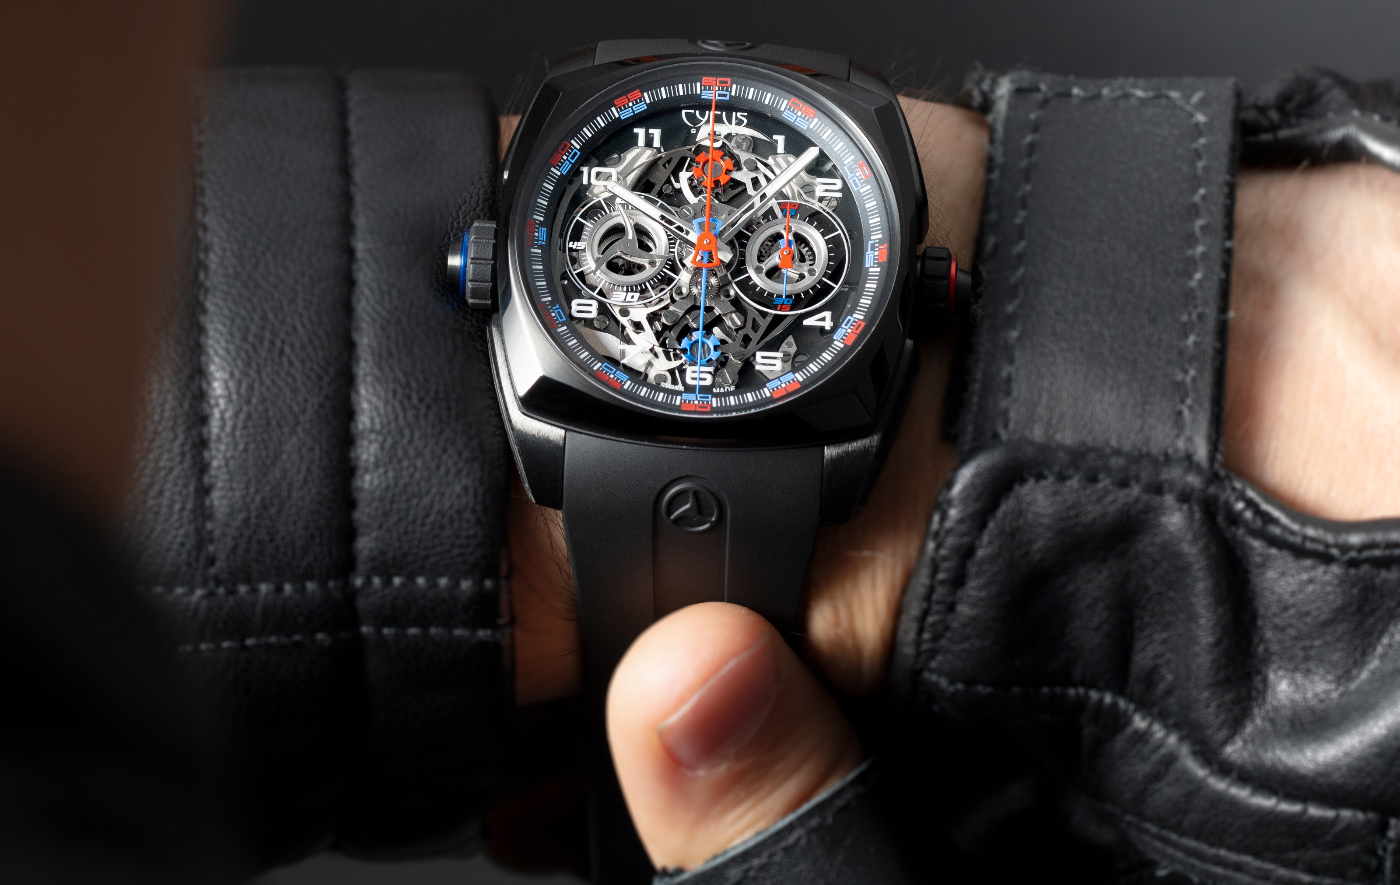 Cyrus unveils a double independent monopusher chronograph